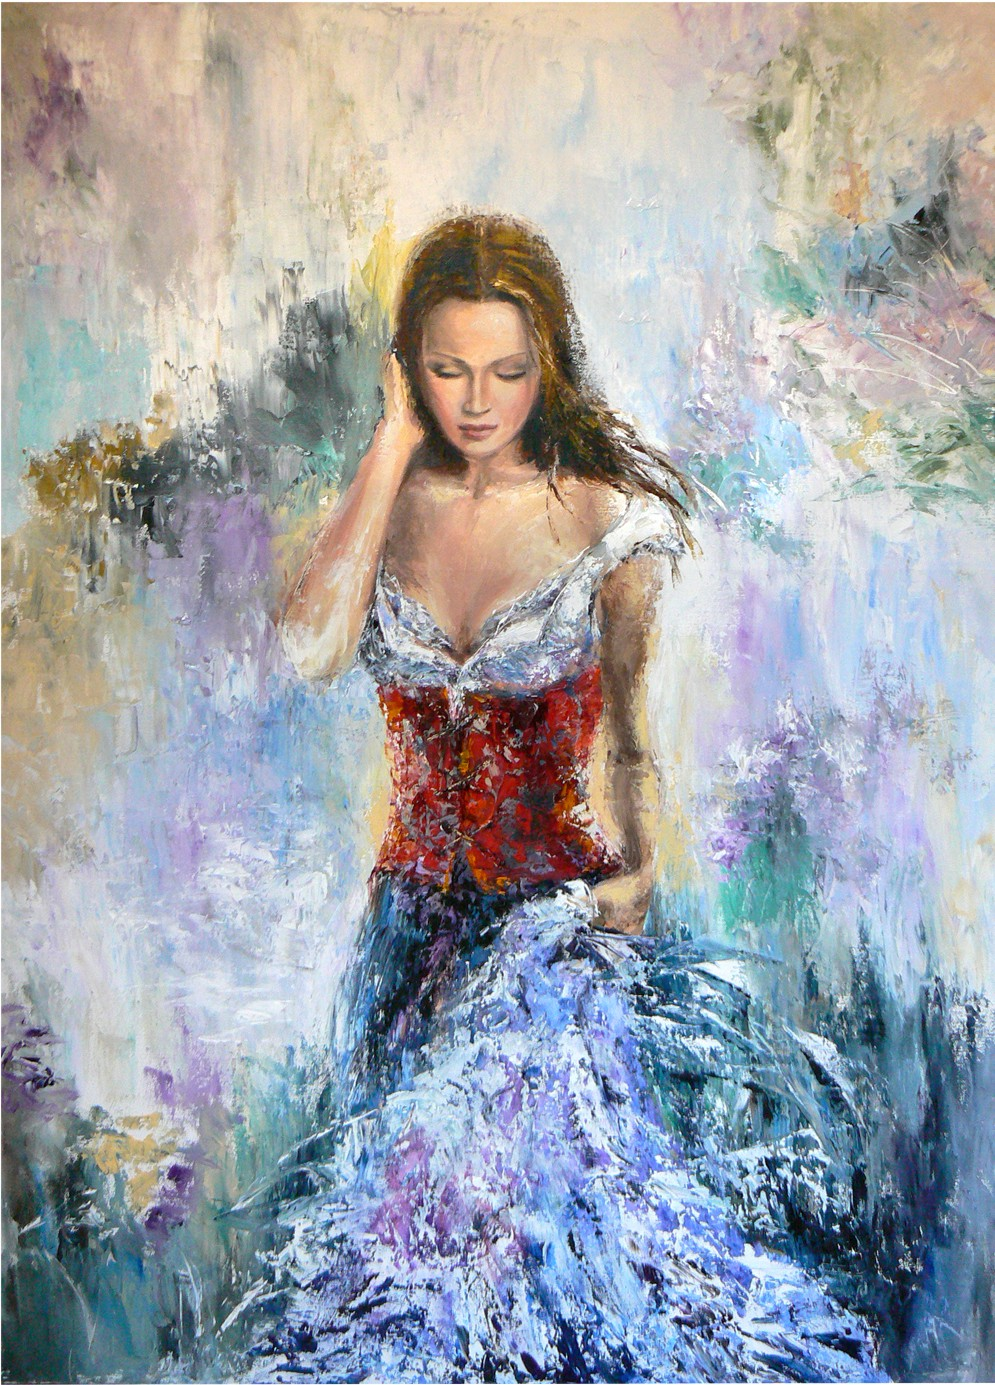 Liana Gor - Giselle 40x30 - Oil on Canvas